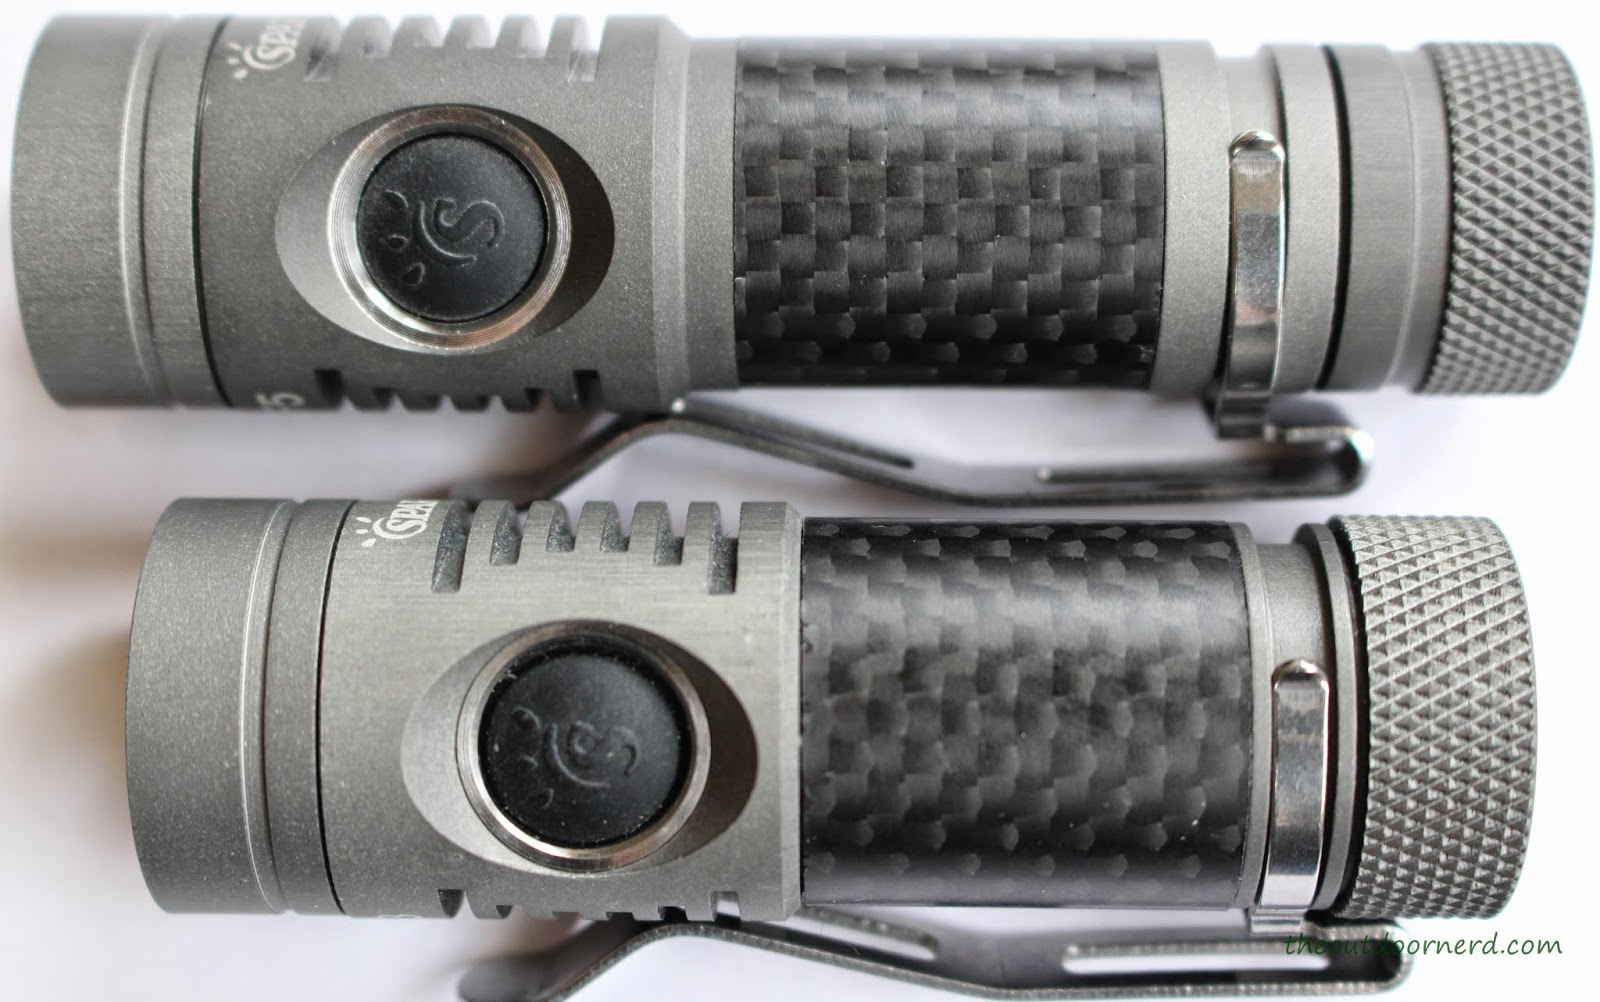 Spark SF3 1xCR123A Flashlight Product View 8